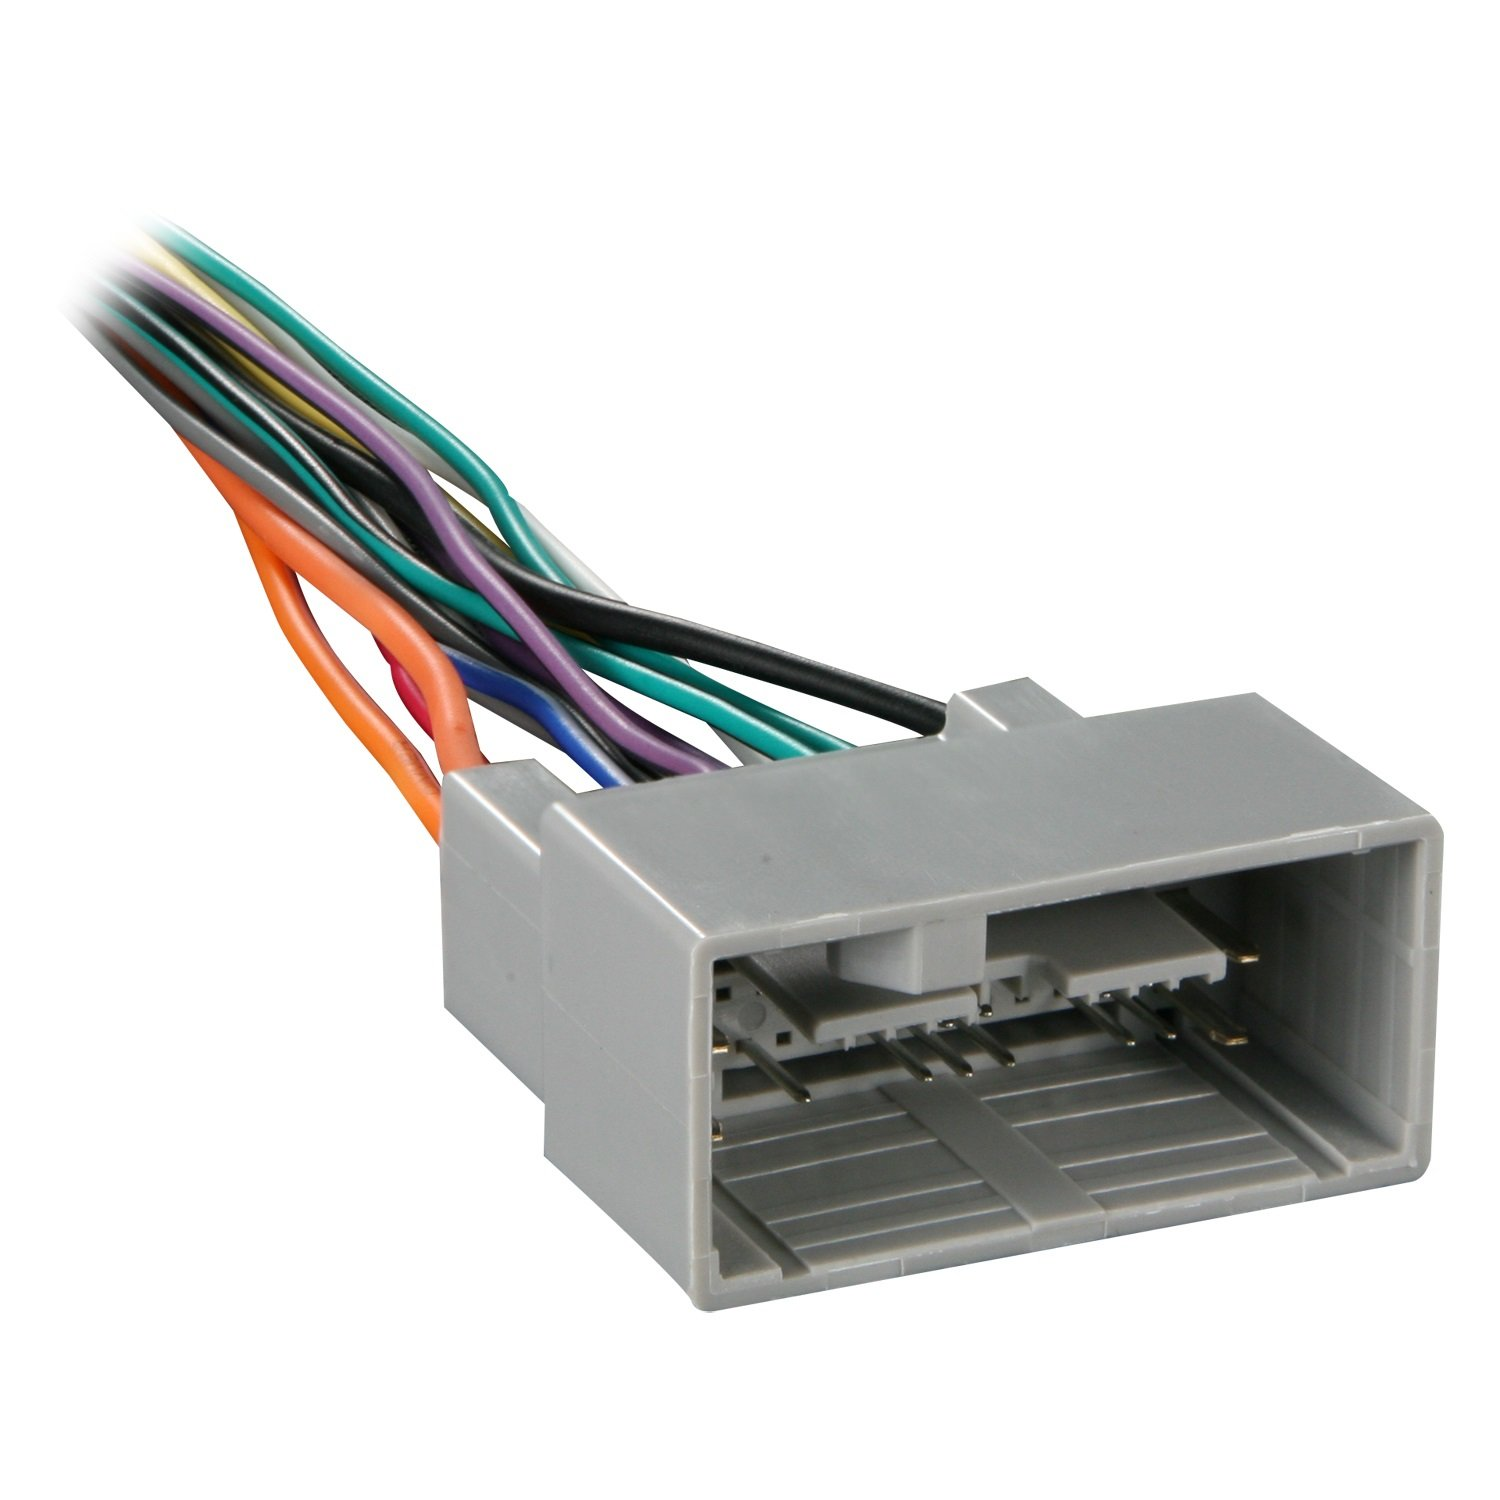 613Kg8IWI7L._SL1500_ amazon com metra 70 1729 radio wiring harness for honda 2008 up  at bayanpartner.co